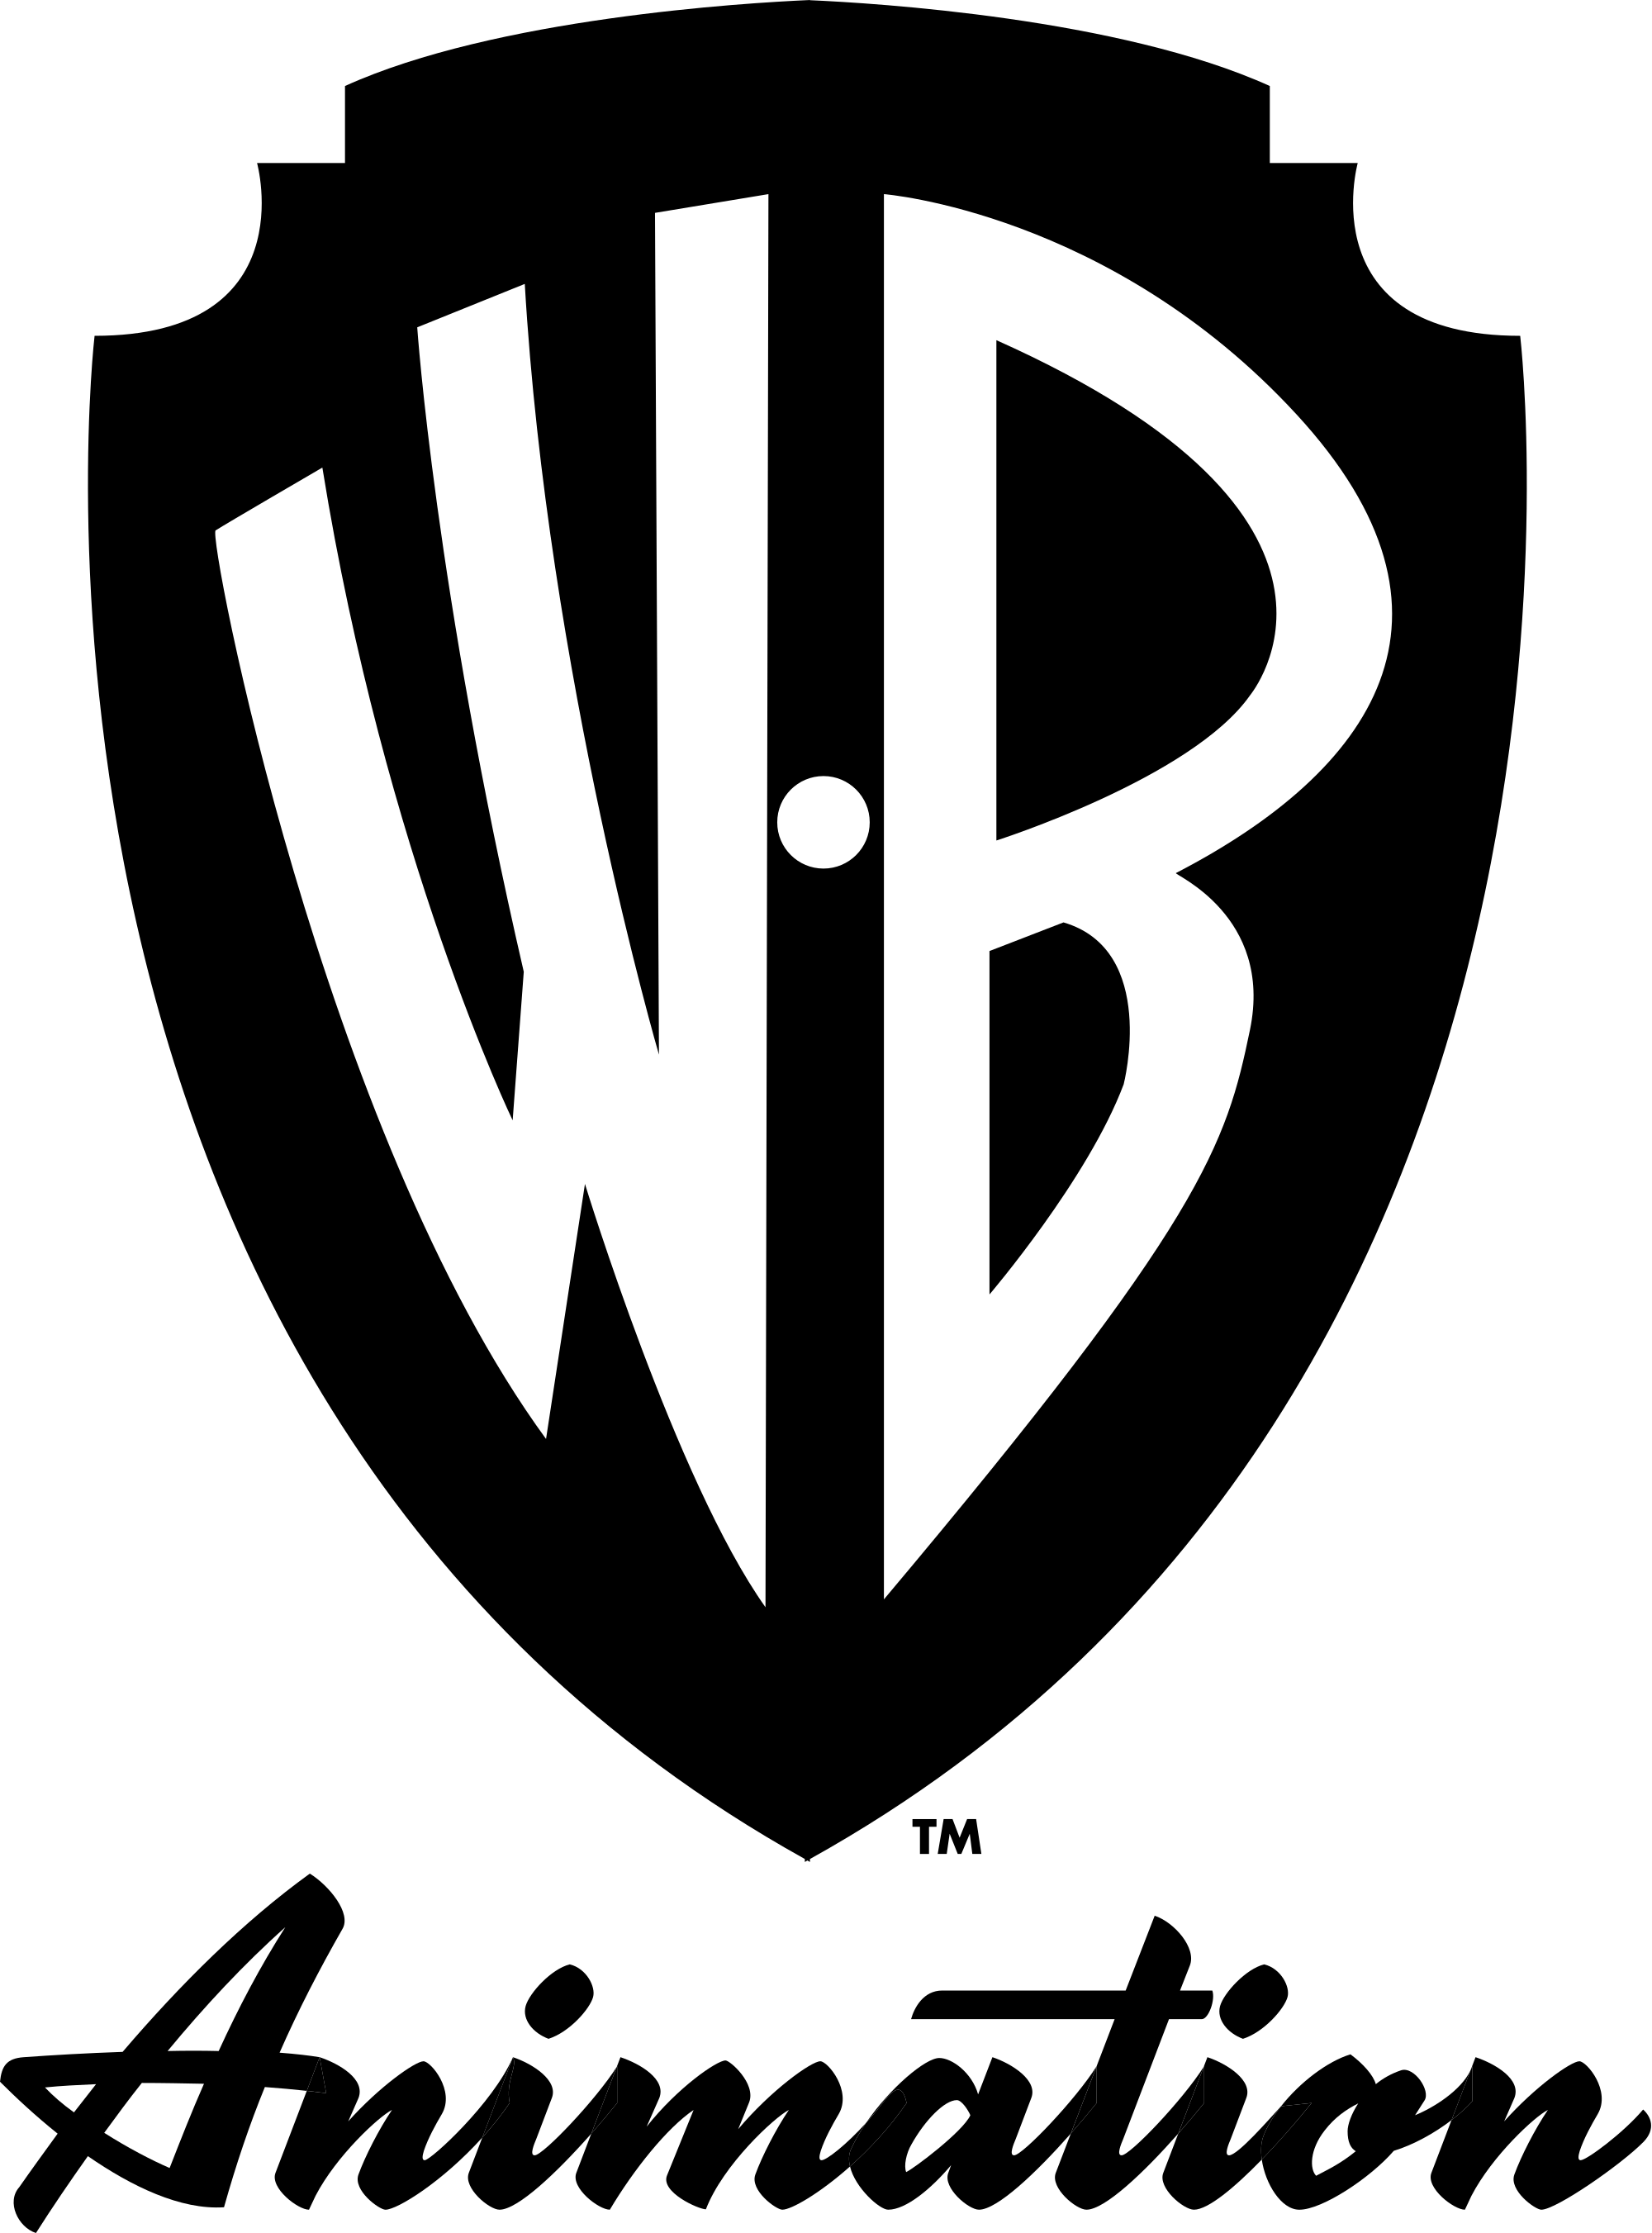 Warner bros pictures logo png. File animation svg wikimedia